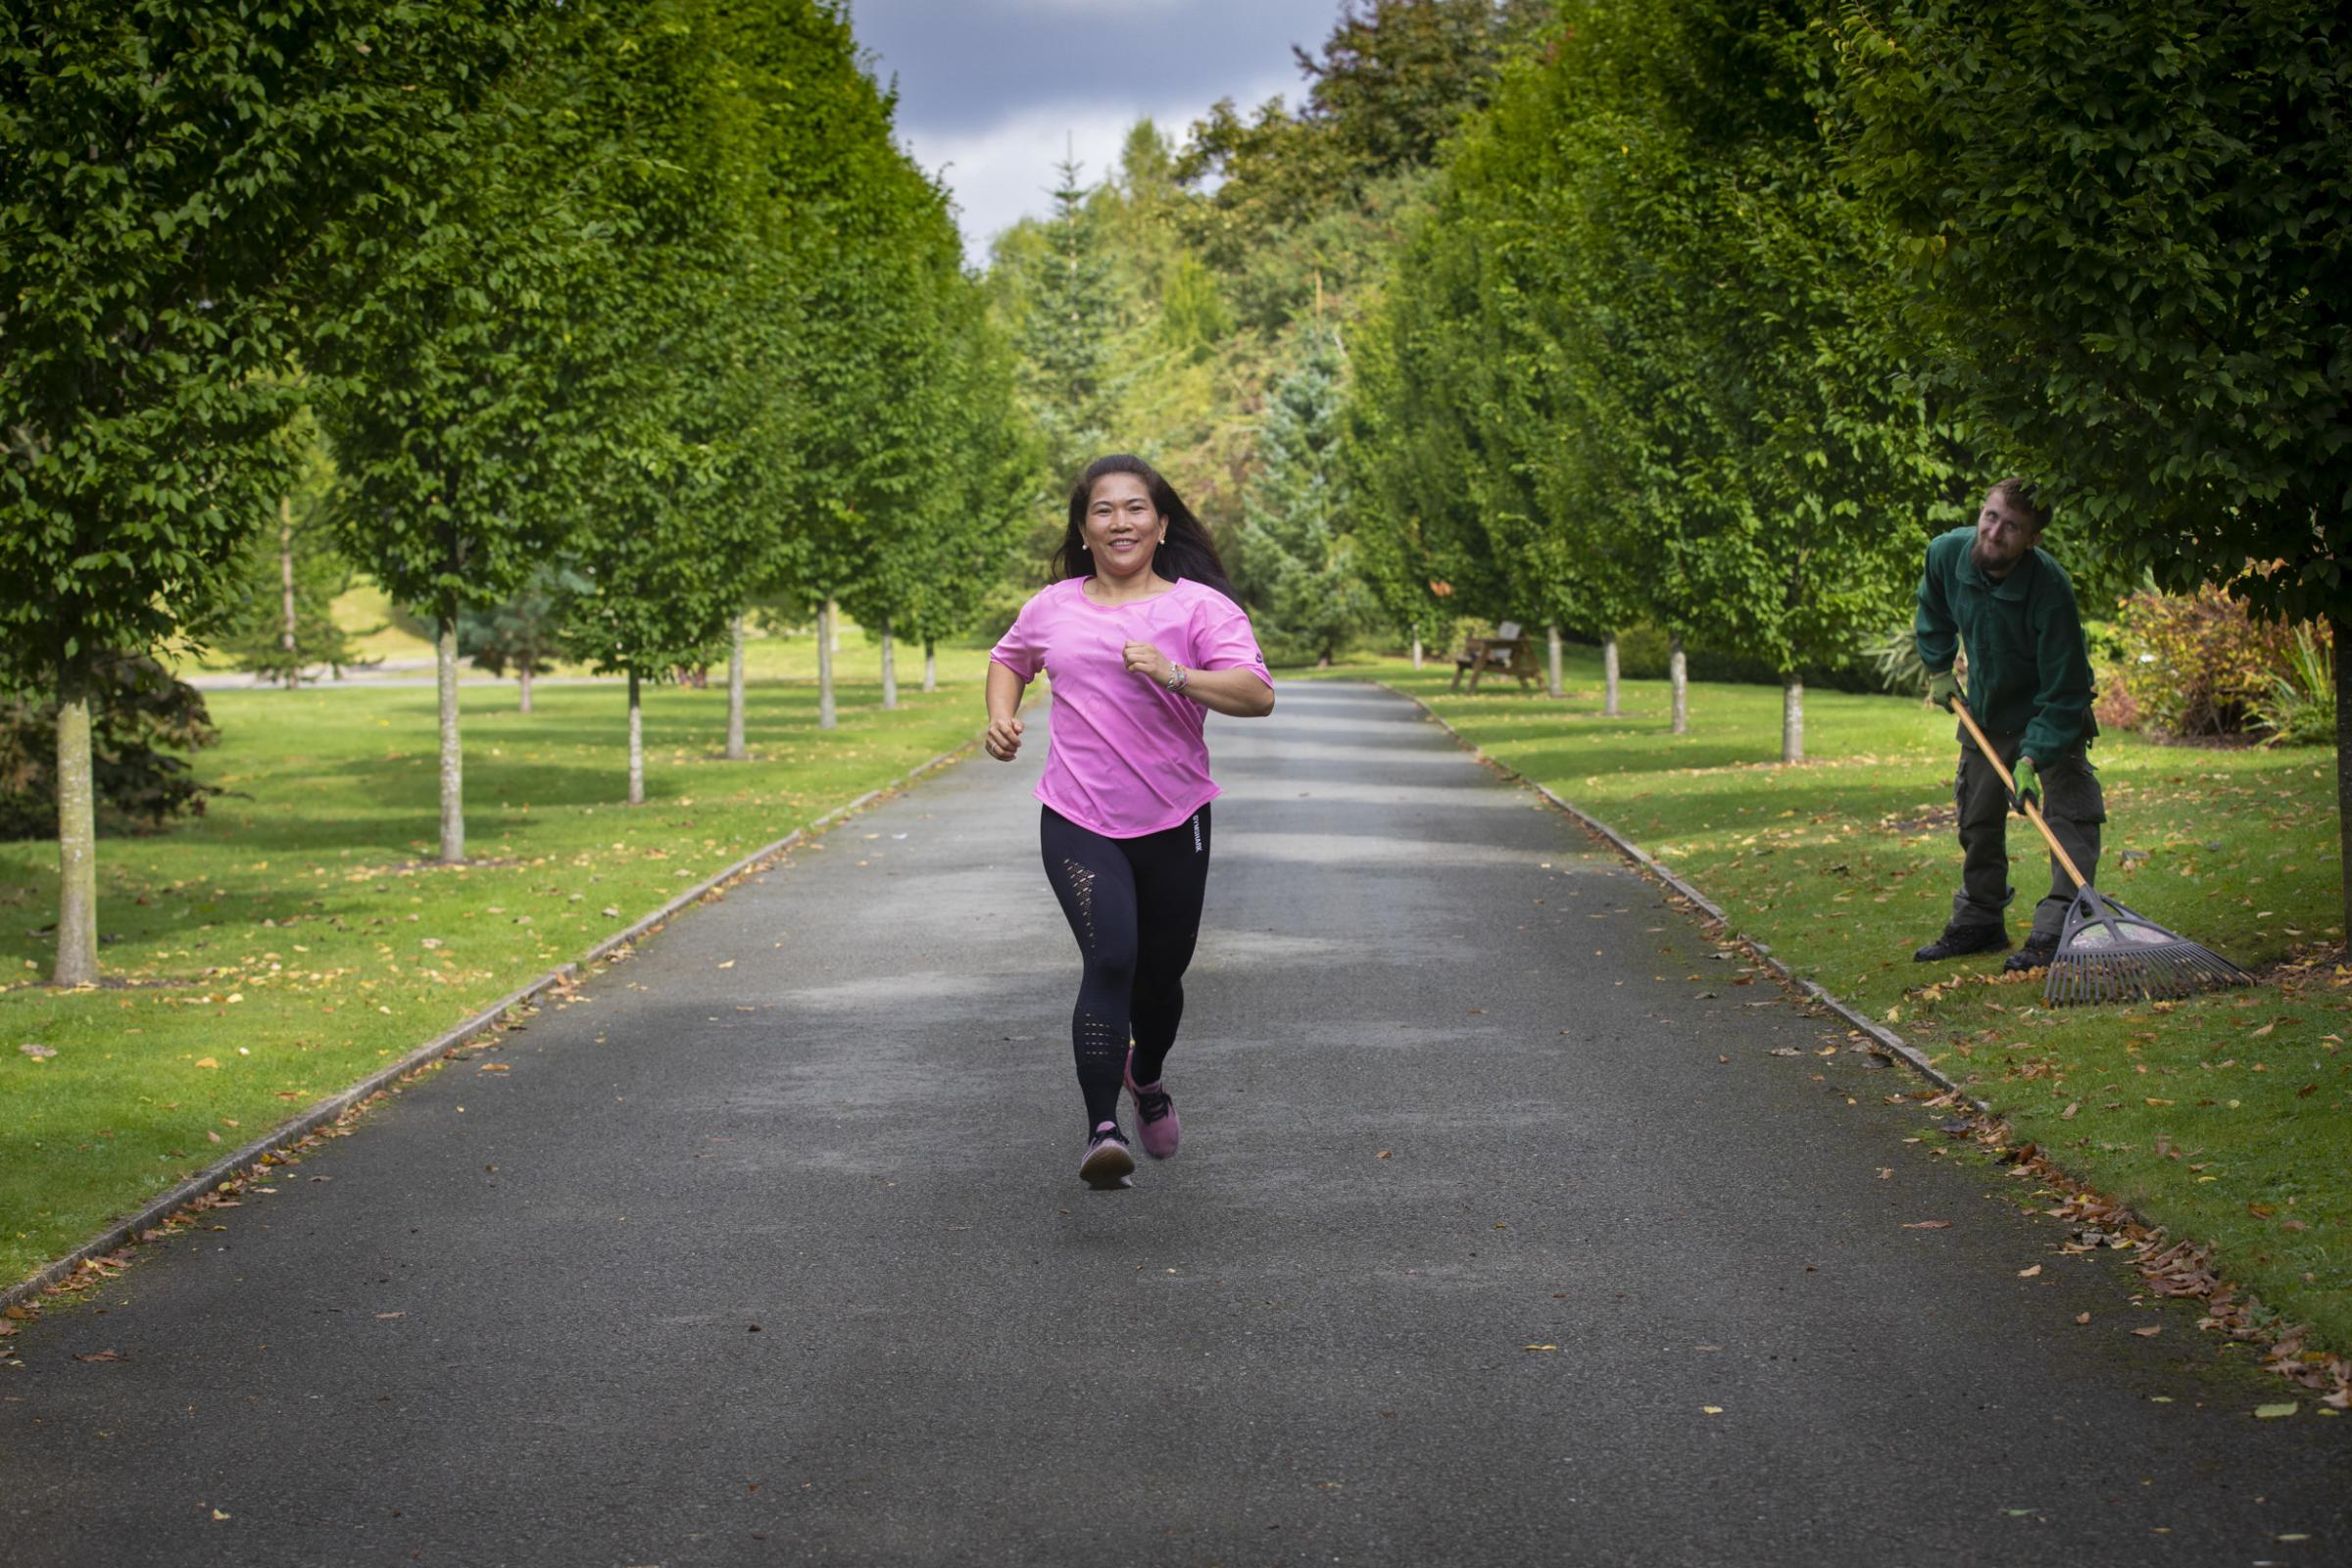 Pendine Park, bodlondeb nursing practitioner Evelyn Dimatu, who raises funds through a charity run for Nova Martin-Roxburgh, three, and practices on the grounds of Pendine Park, is Evelyn Dimatu, who is watched by gardener Jamie Roberts.  Photo: Mandy Jones